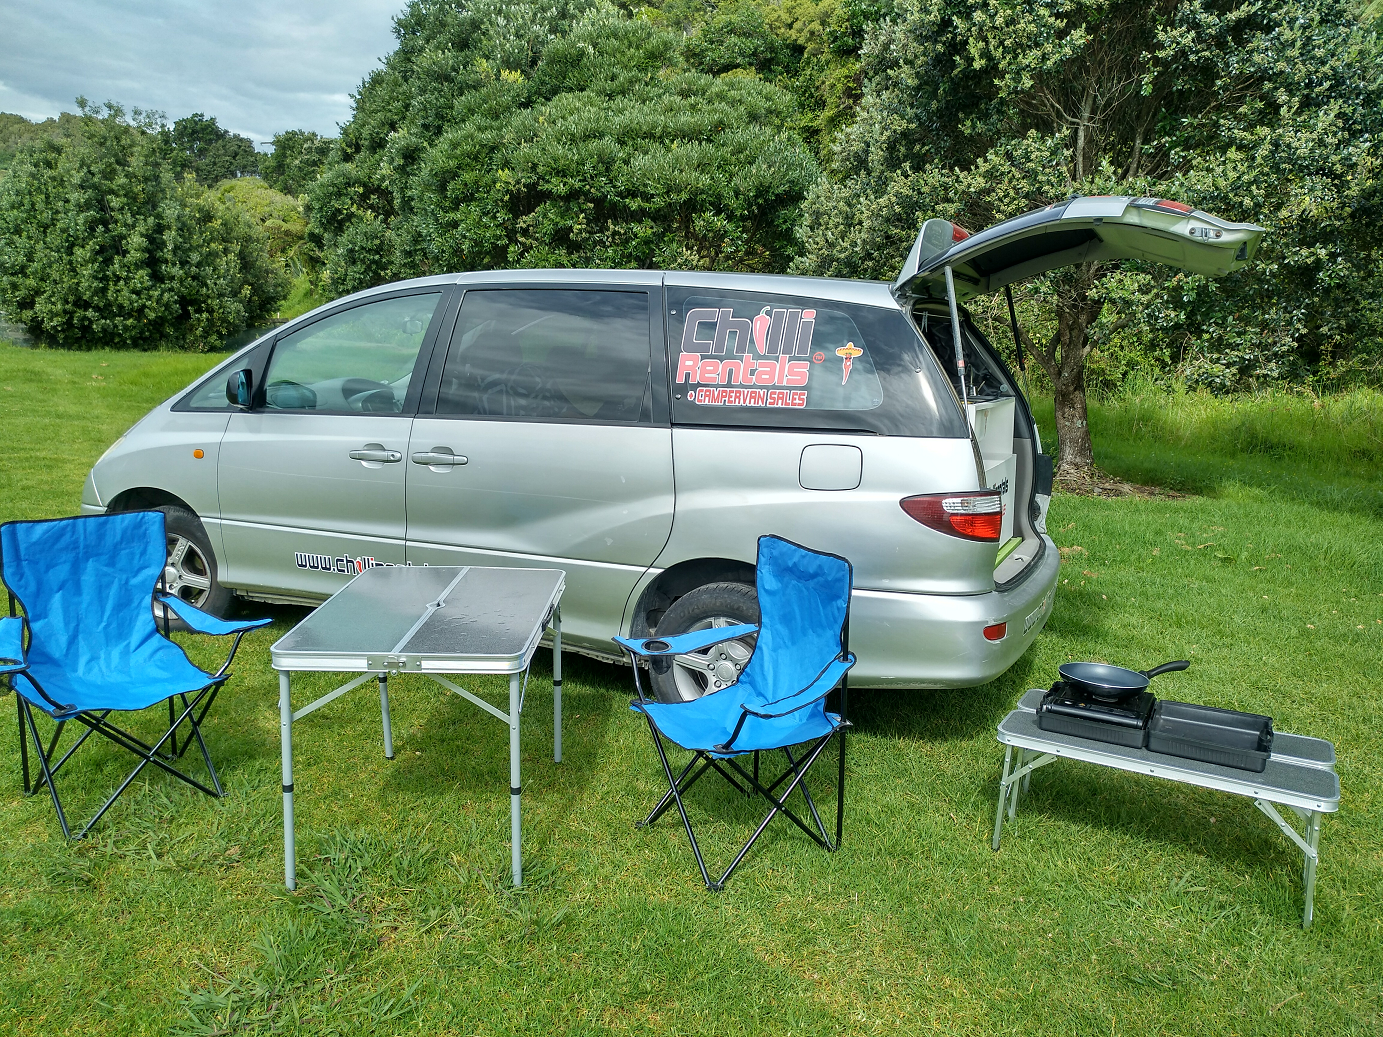 Freedom C&ing New Zealand new rules 2018 & New Zealand Freedom Camping 2018 - Tougher Rules | Chilli Rentals ...